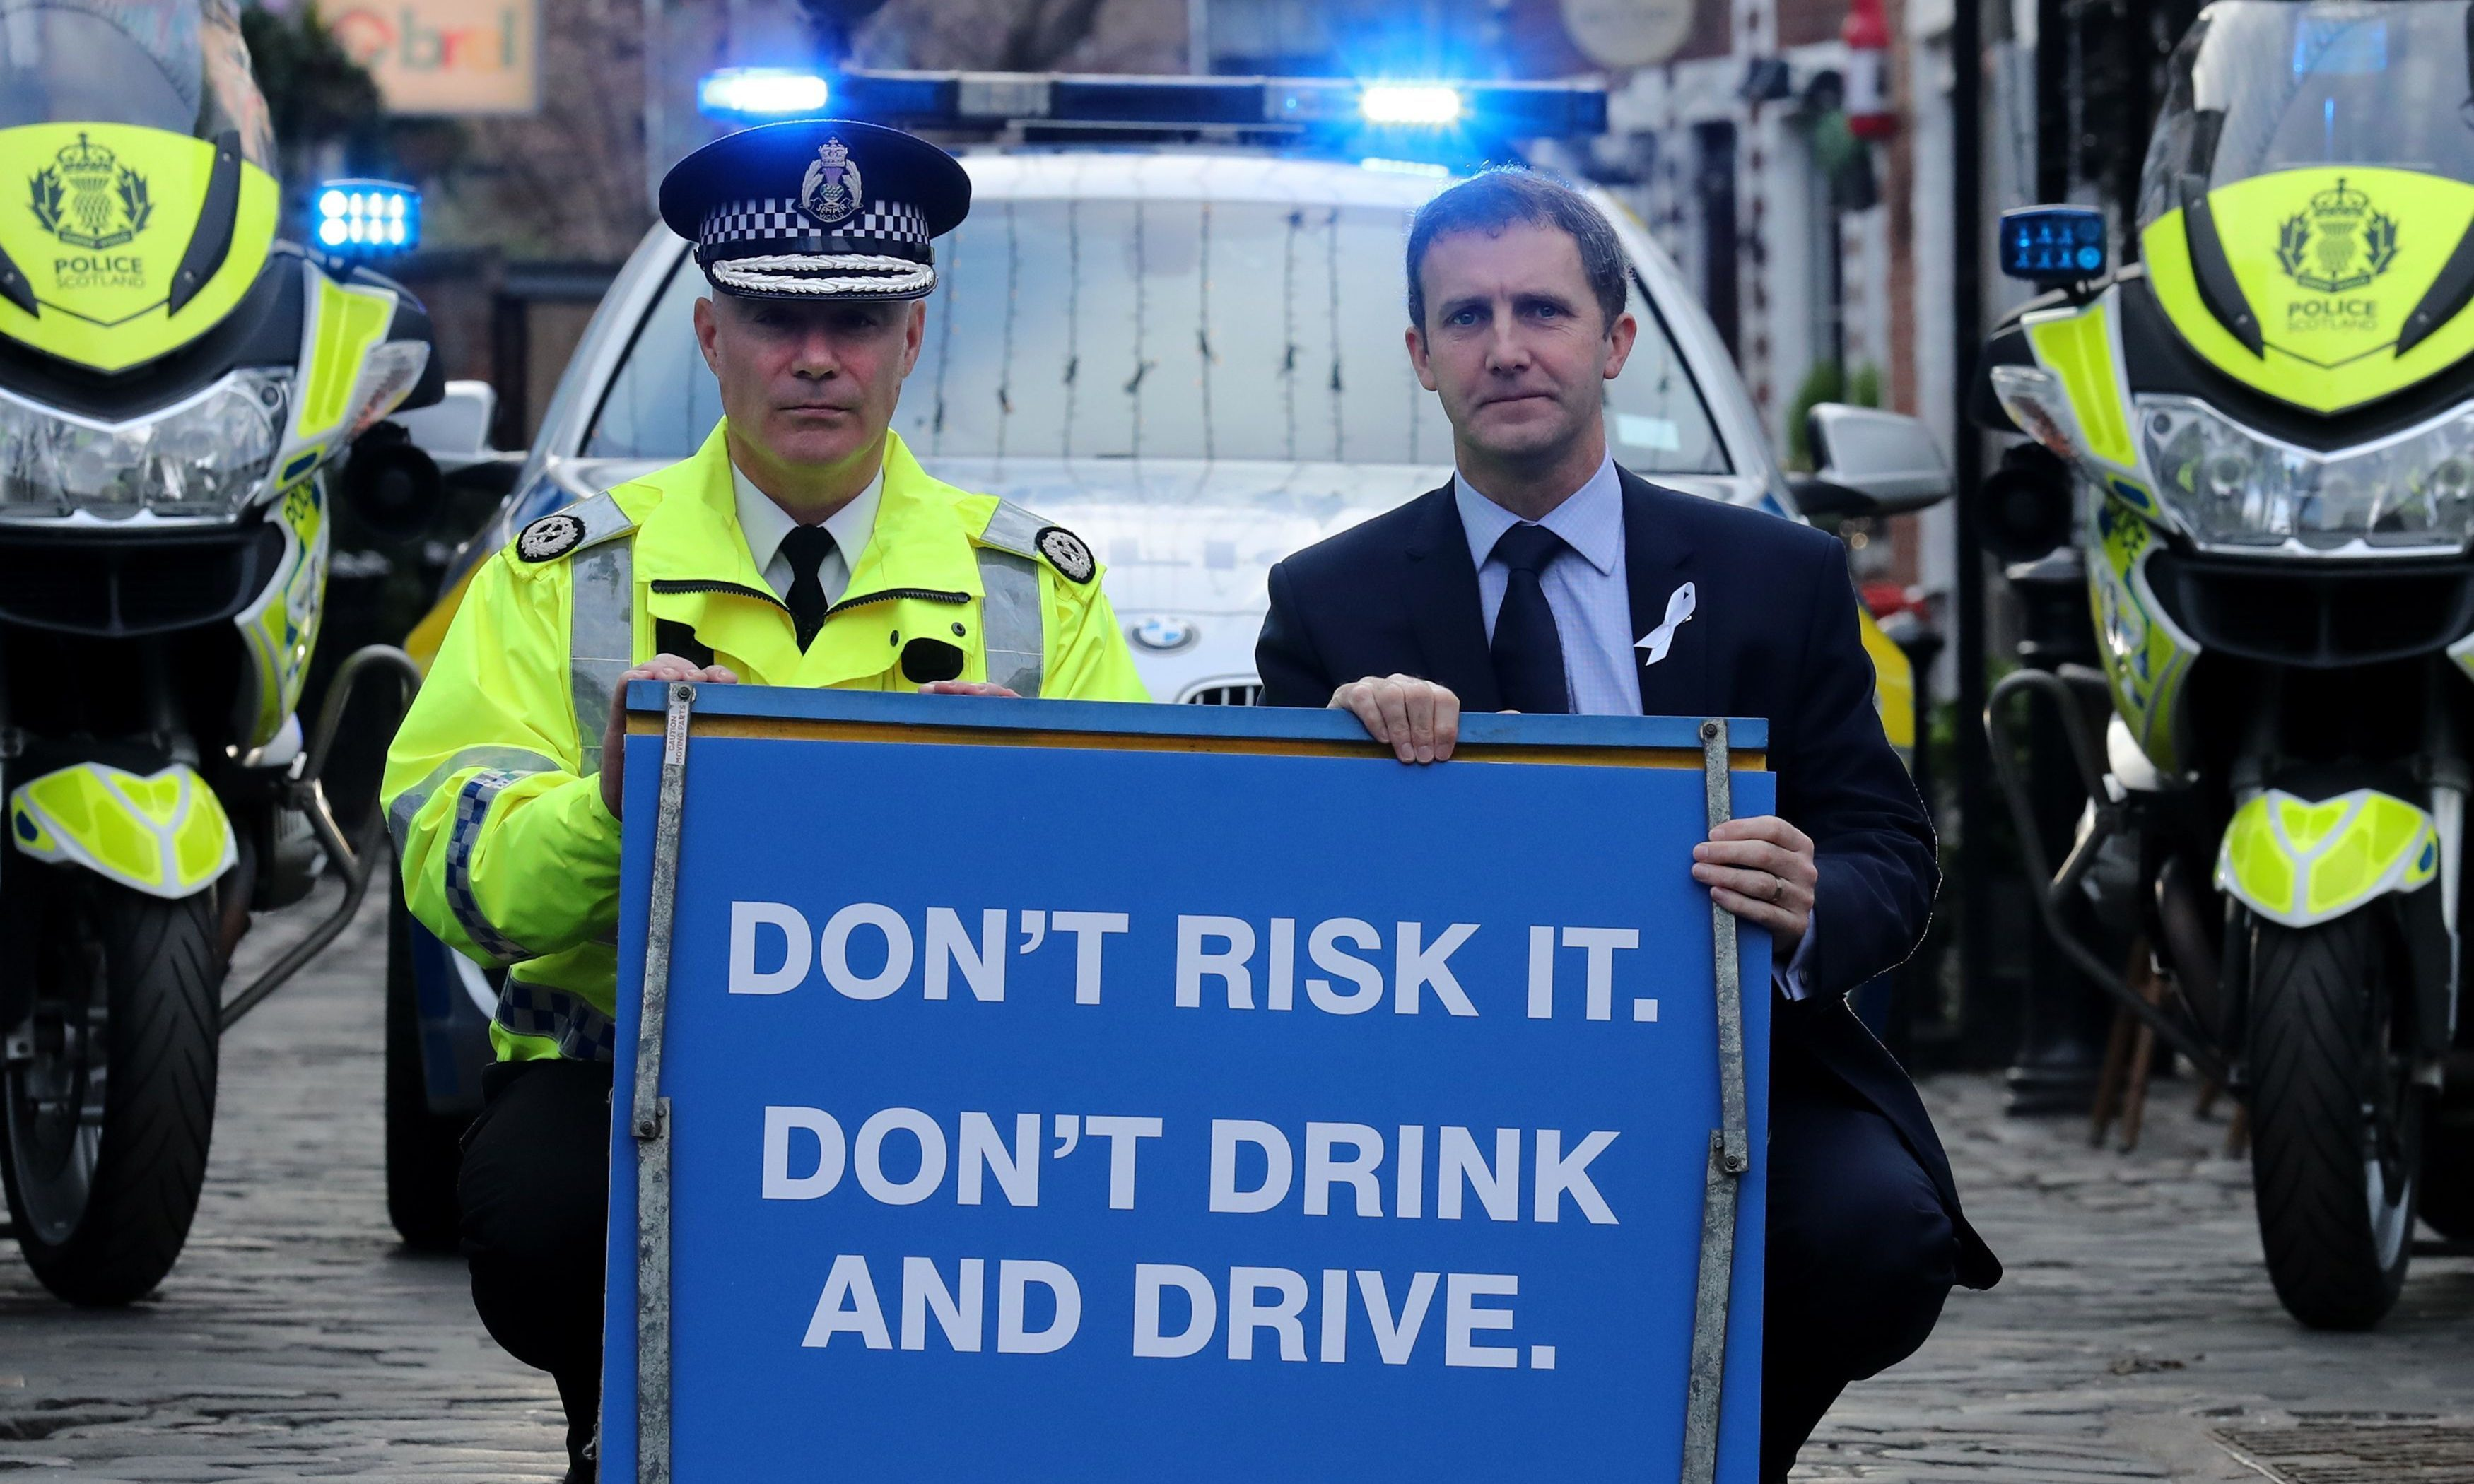 Scottish Justice Secretary Michael Matheson (right) joins Police Scotland Assistant Chief Constable Bernard Higgins as Police Scotland launches their annual festive drink-drive campaign.